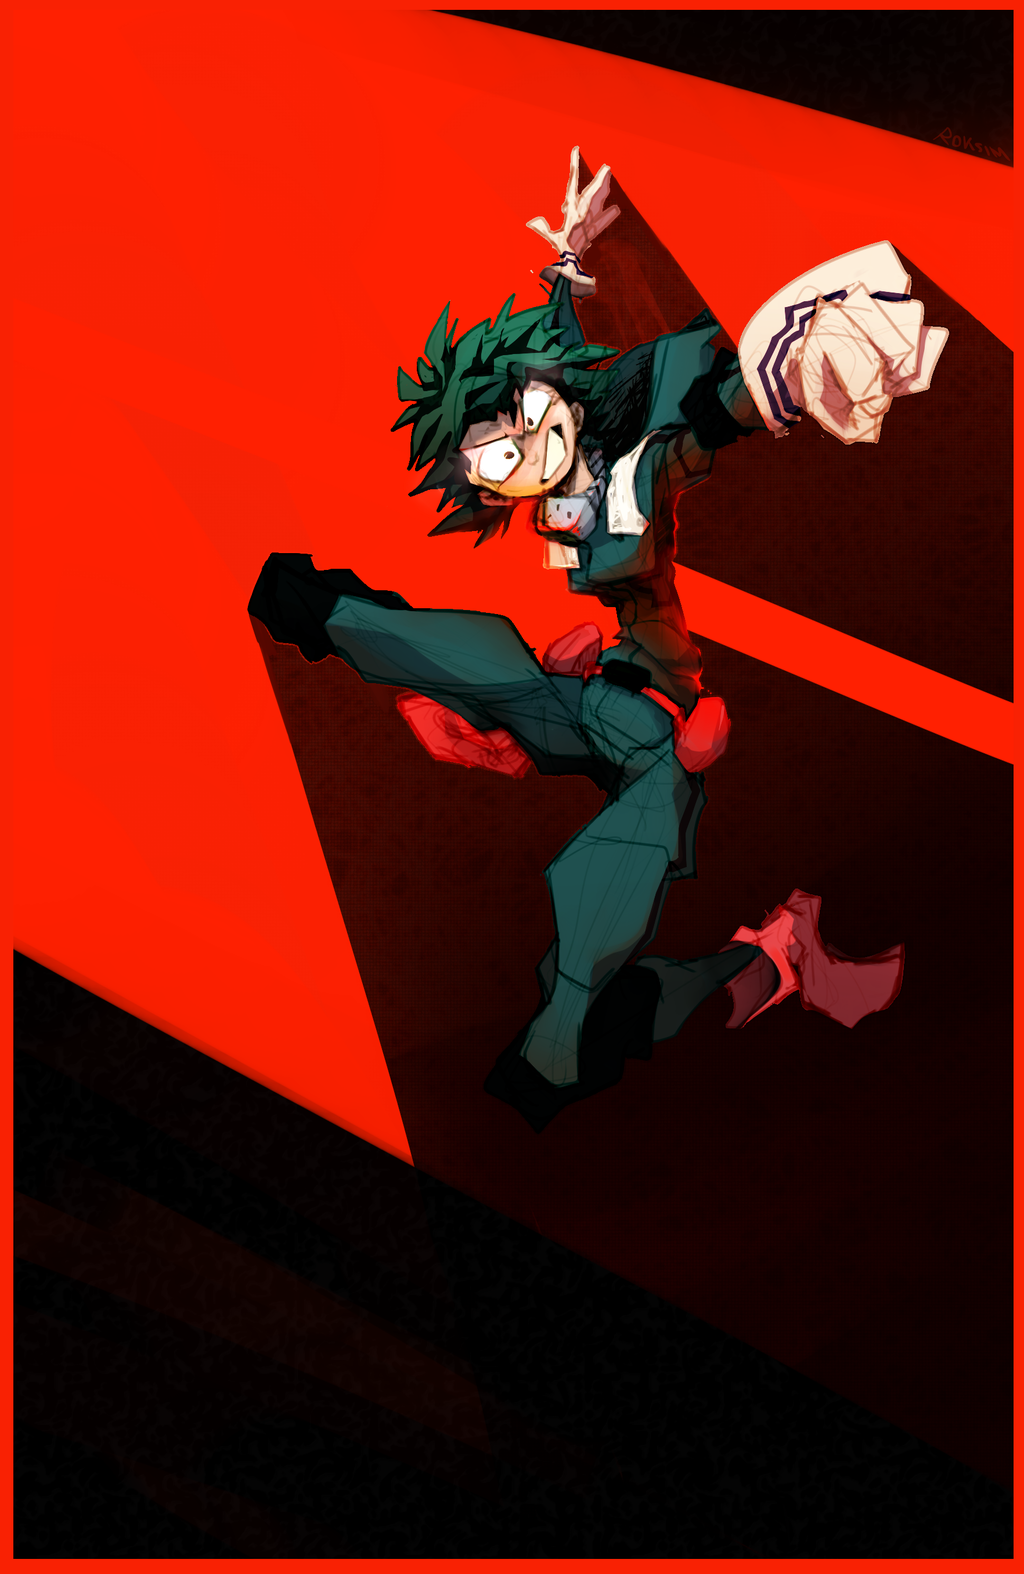 Most recent image: PLUS ULTRA!!!!!!!!!!!!!!!!